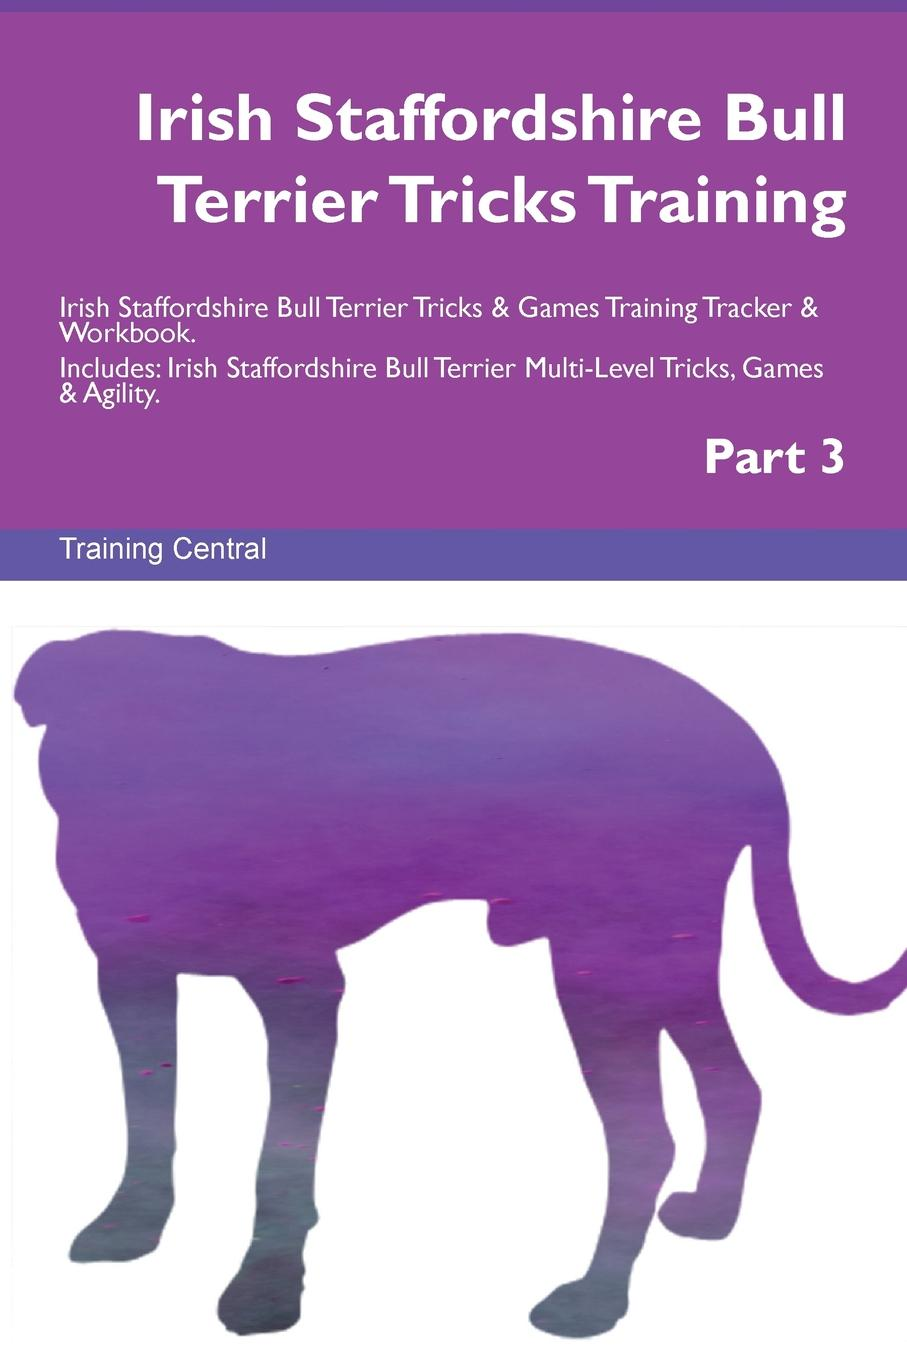 Training Central Irish Staffordshire Bull Terrier Tricks Training Irish Staffordshire Bull Terrier Tricks . Games Training Tracker . Workbook. Includes. Irish Staffordshire Bull Terrier Multi-Level Tricks, Games . Agility. Part 3 this book loves you